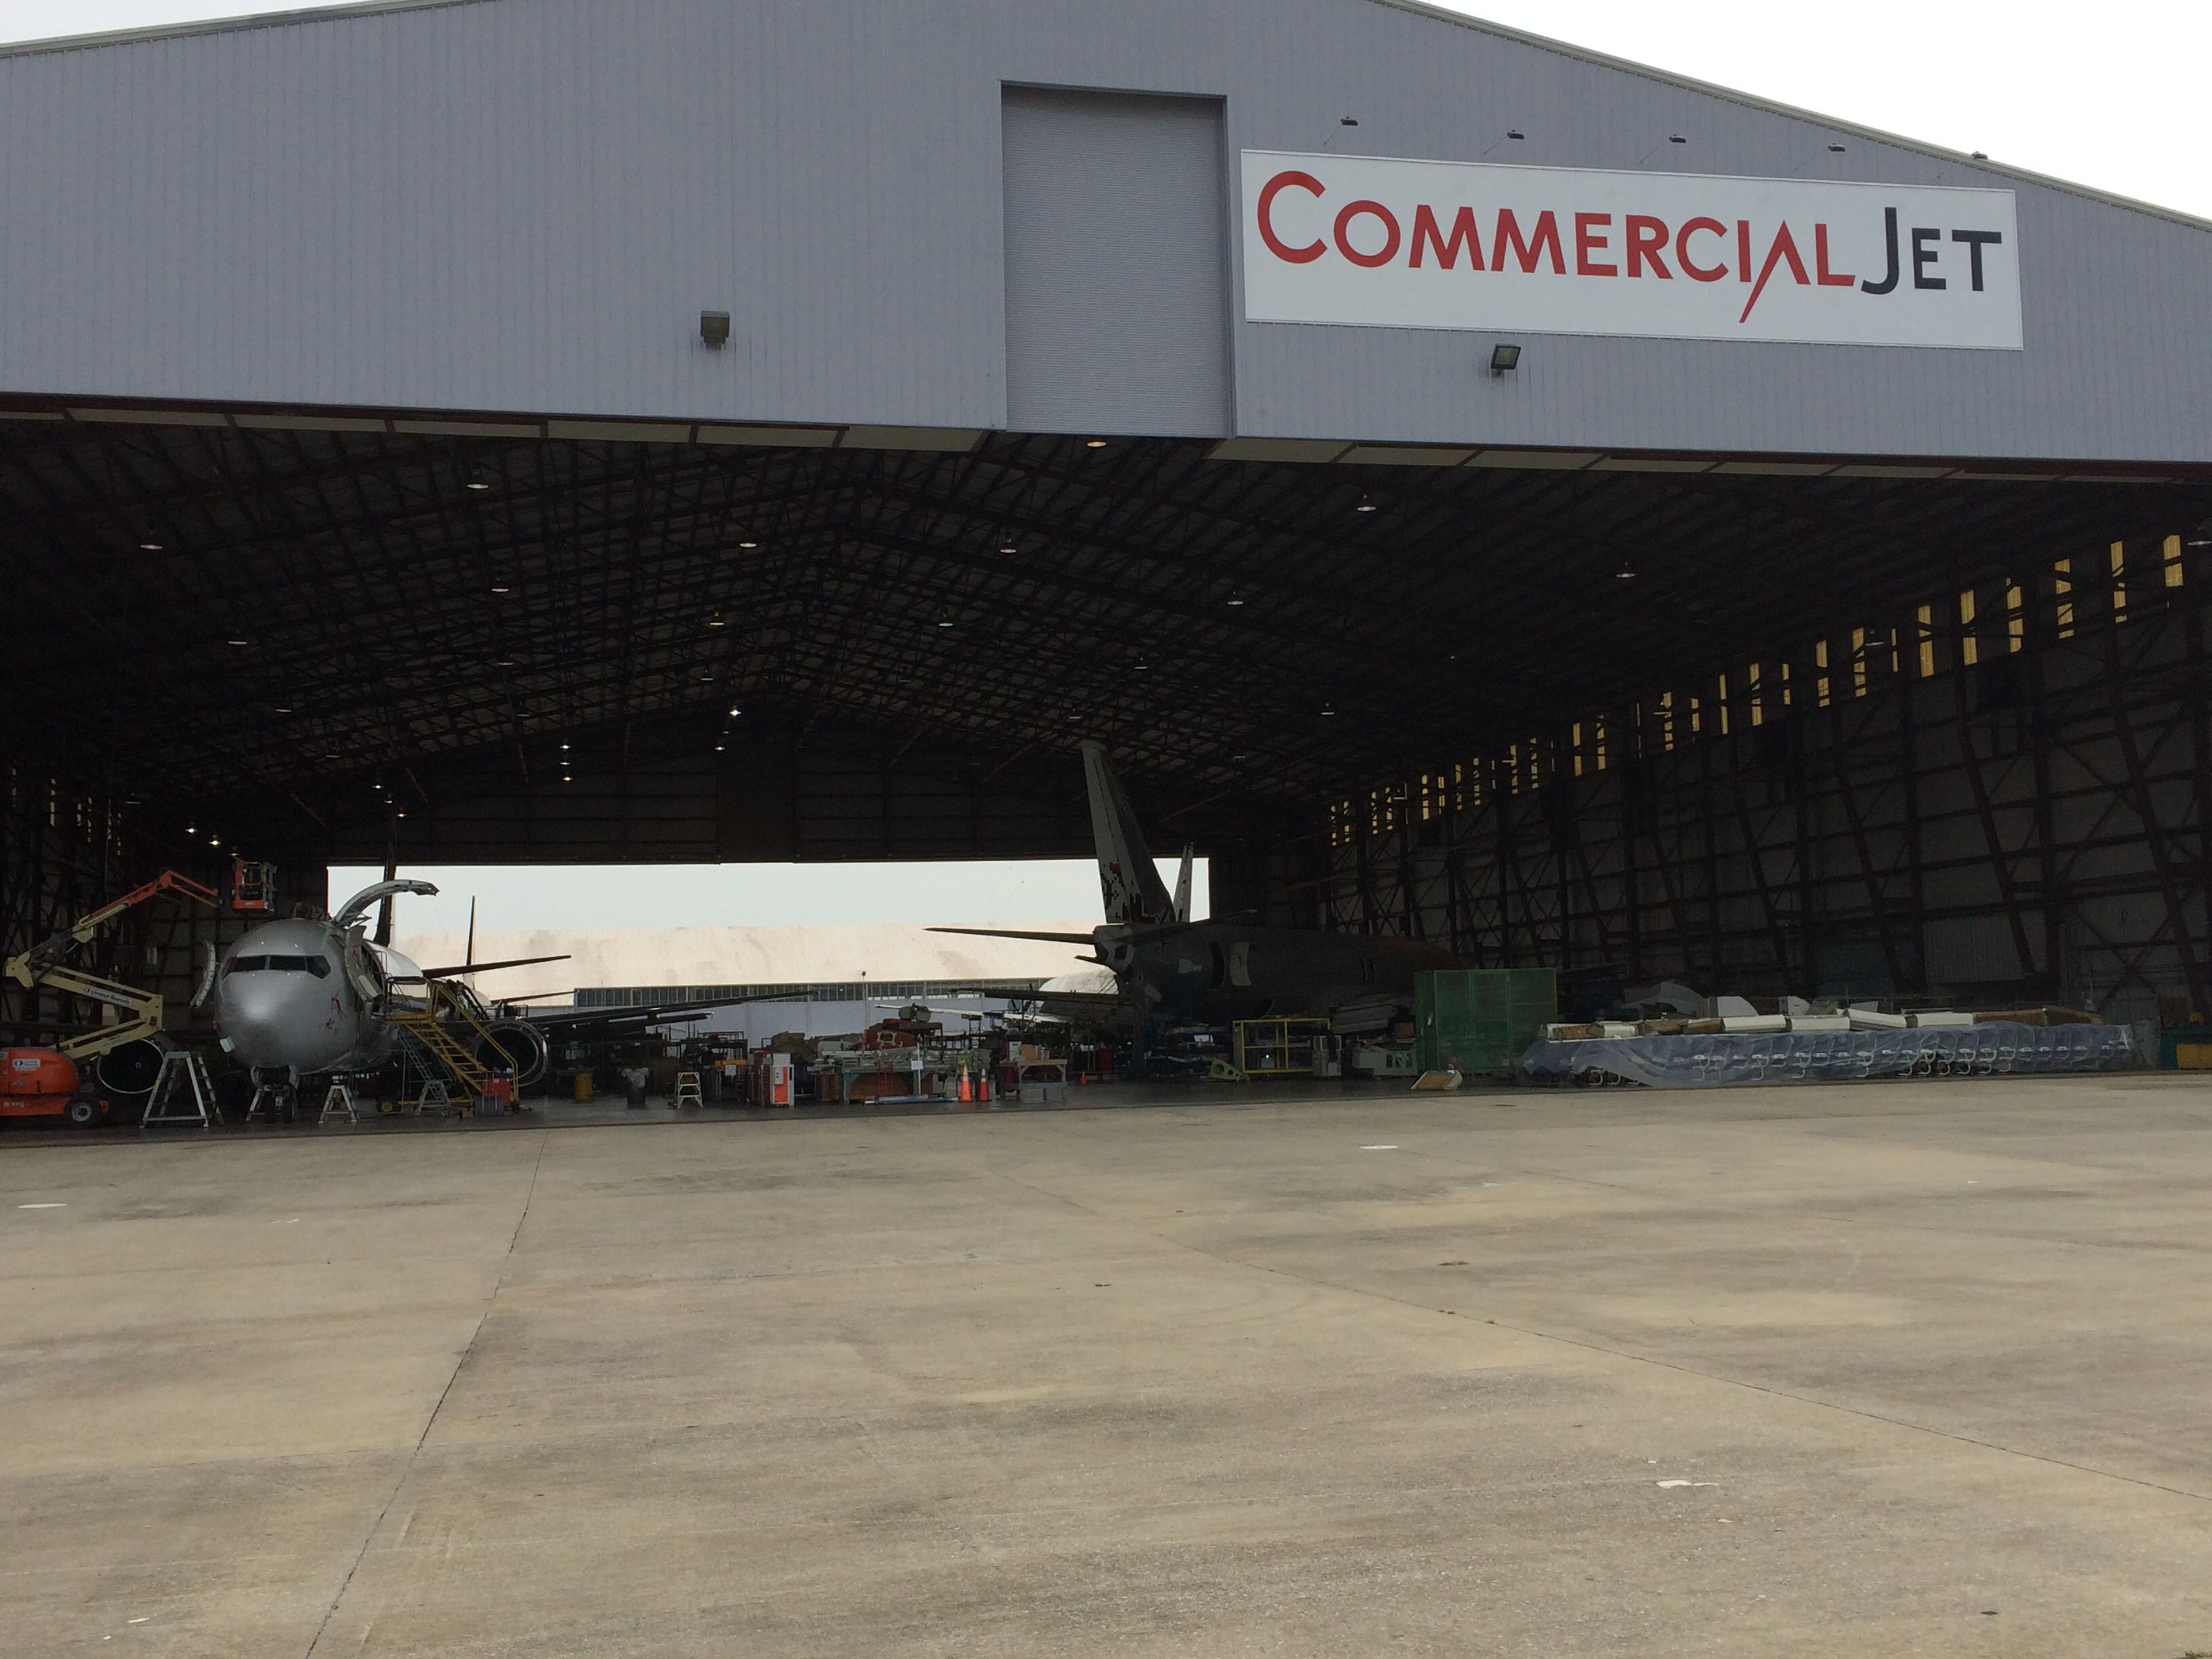 Hangar A Monter One Of The Hangars At Kdhn Commercial Jet Dothan Al